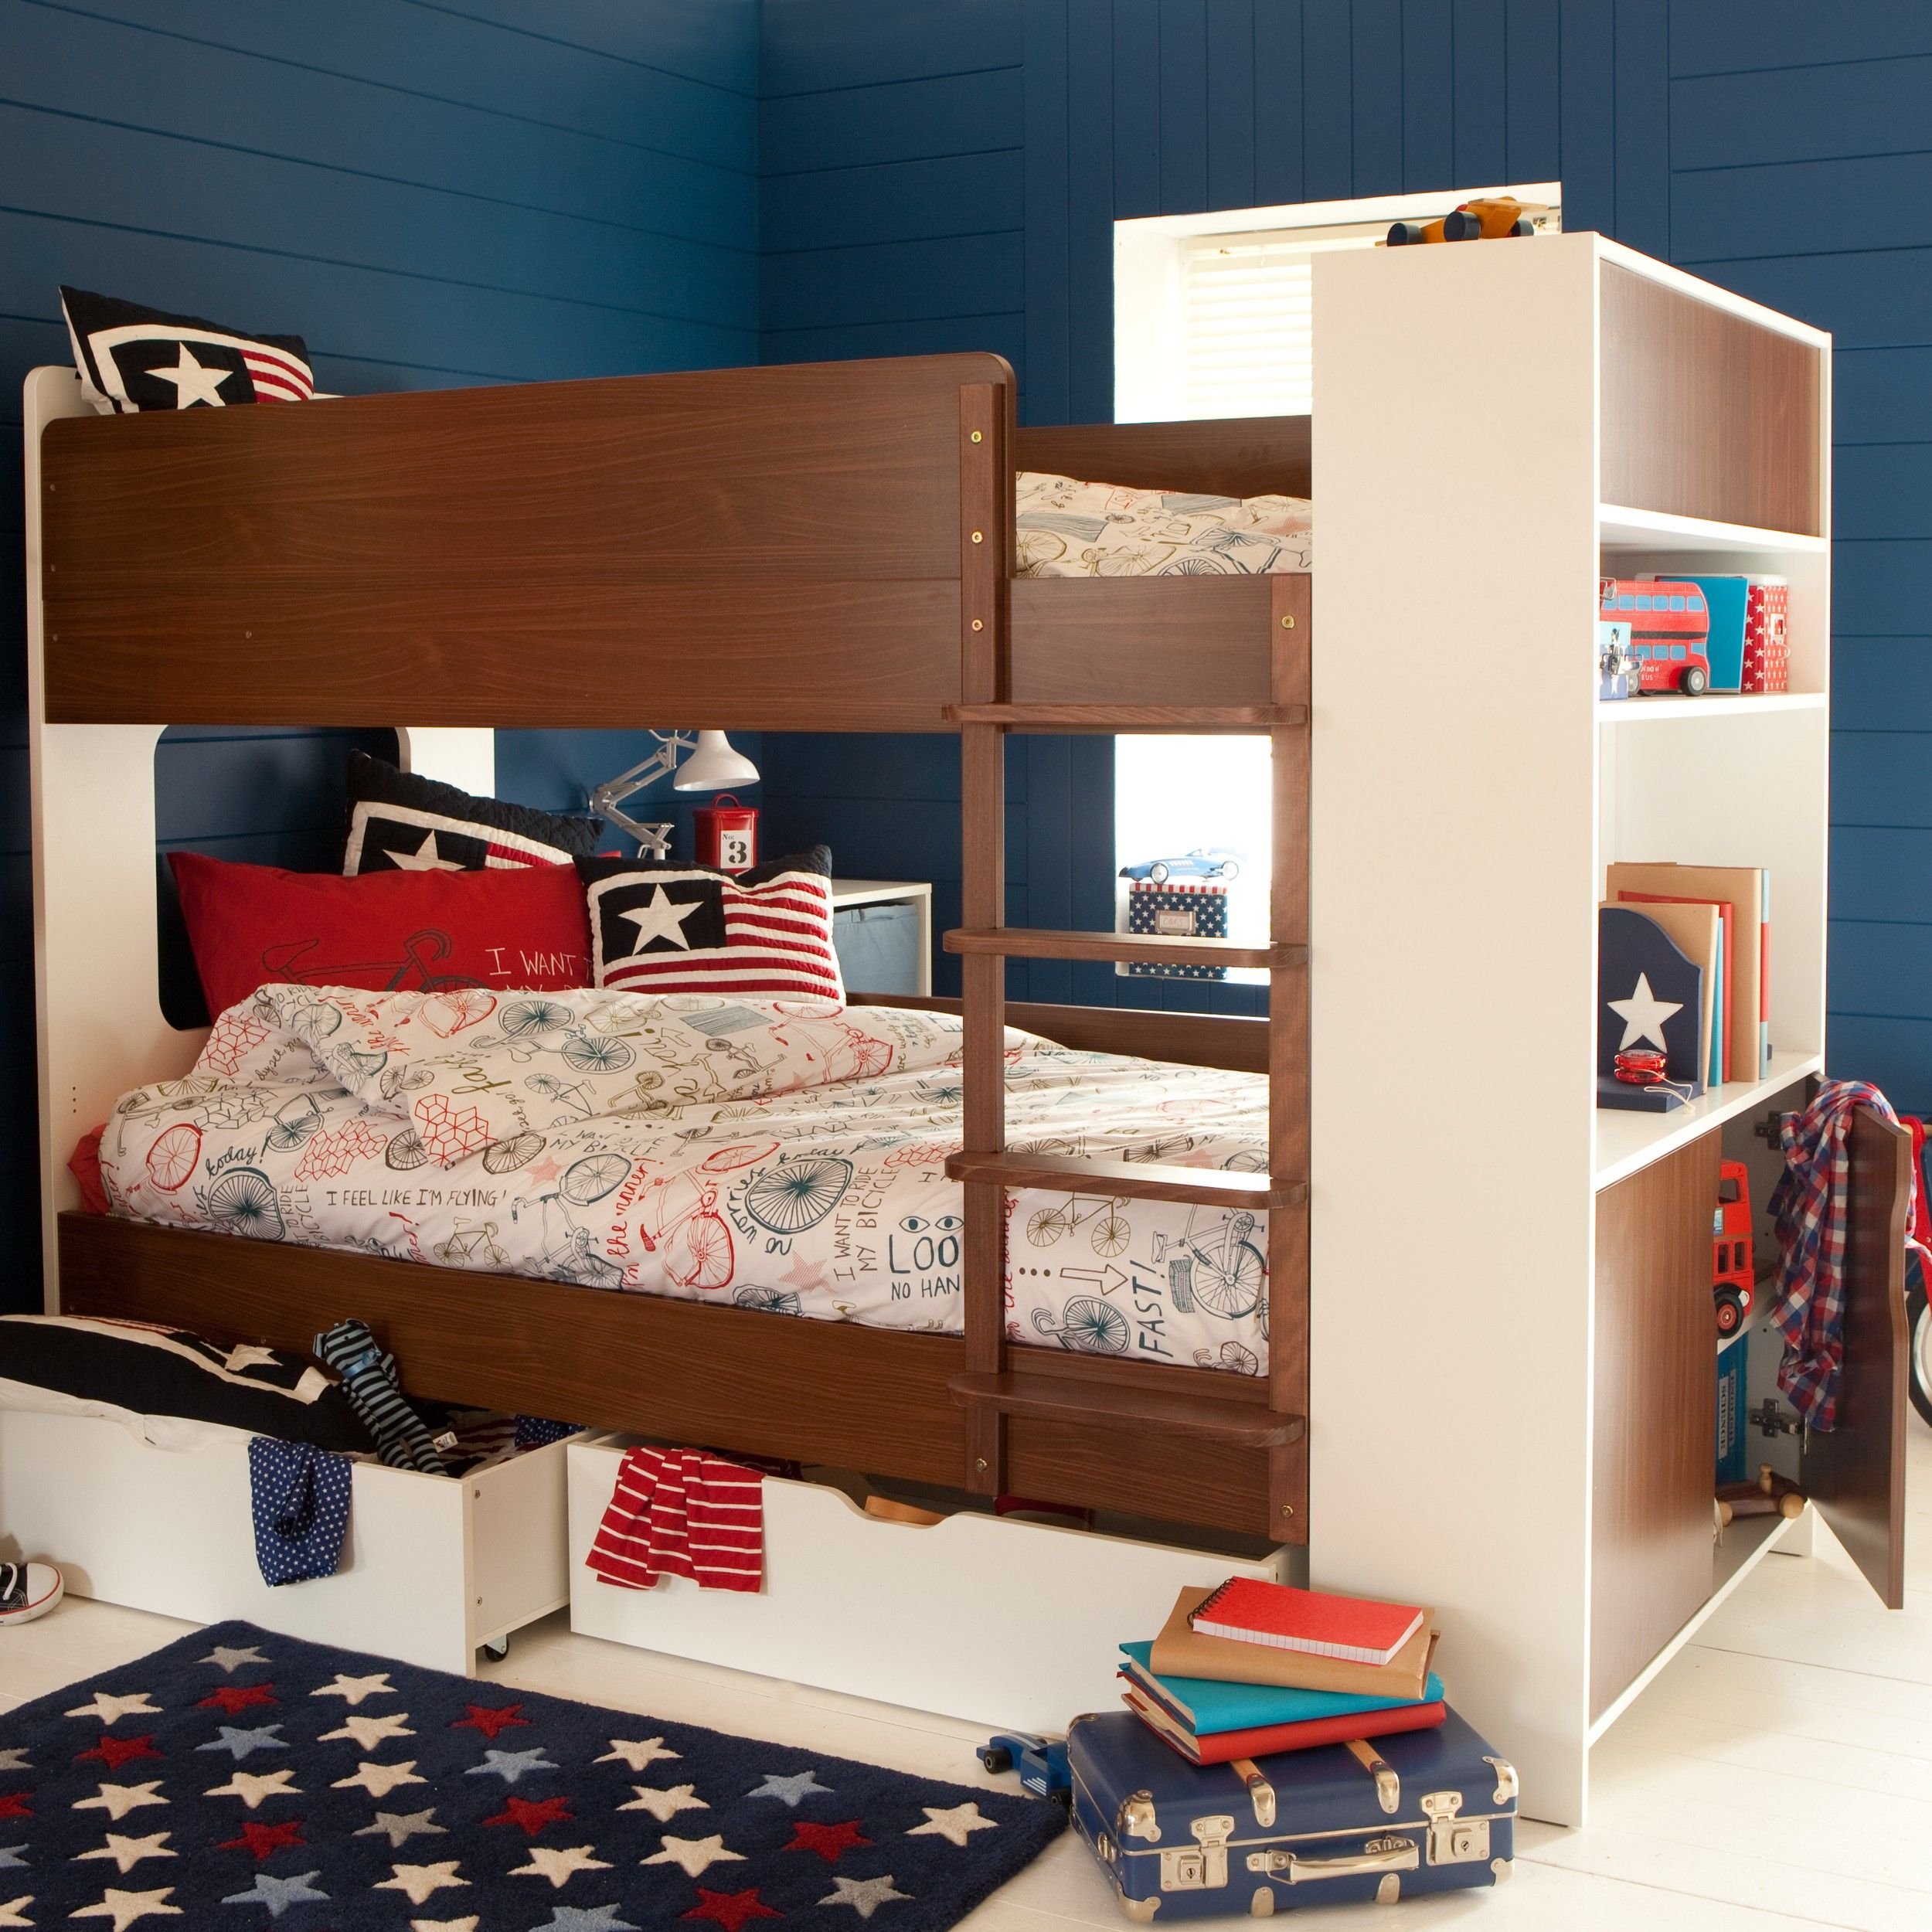 Coco Storage Bunk | Aspace | make - beds | Bunk beds, Bunk beds with ...